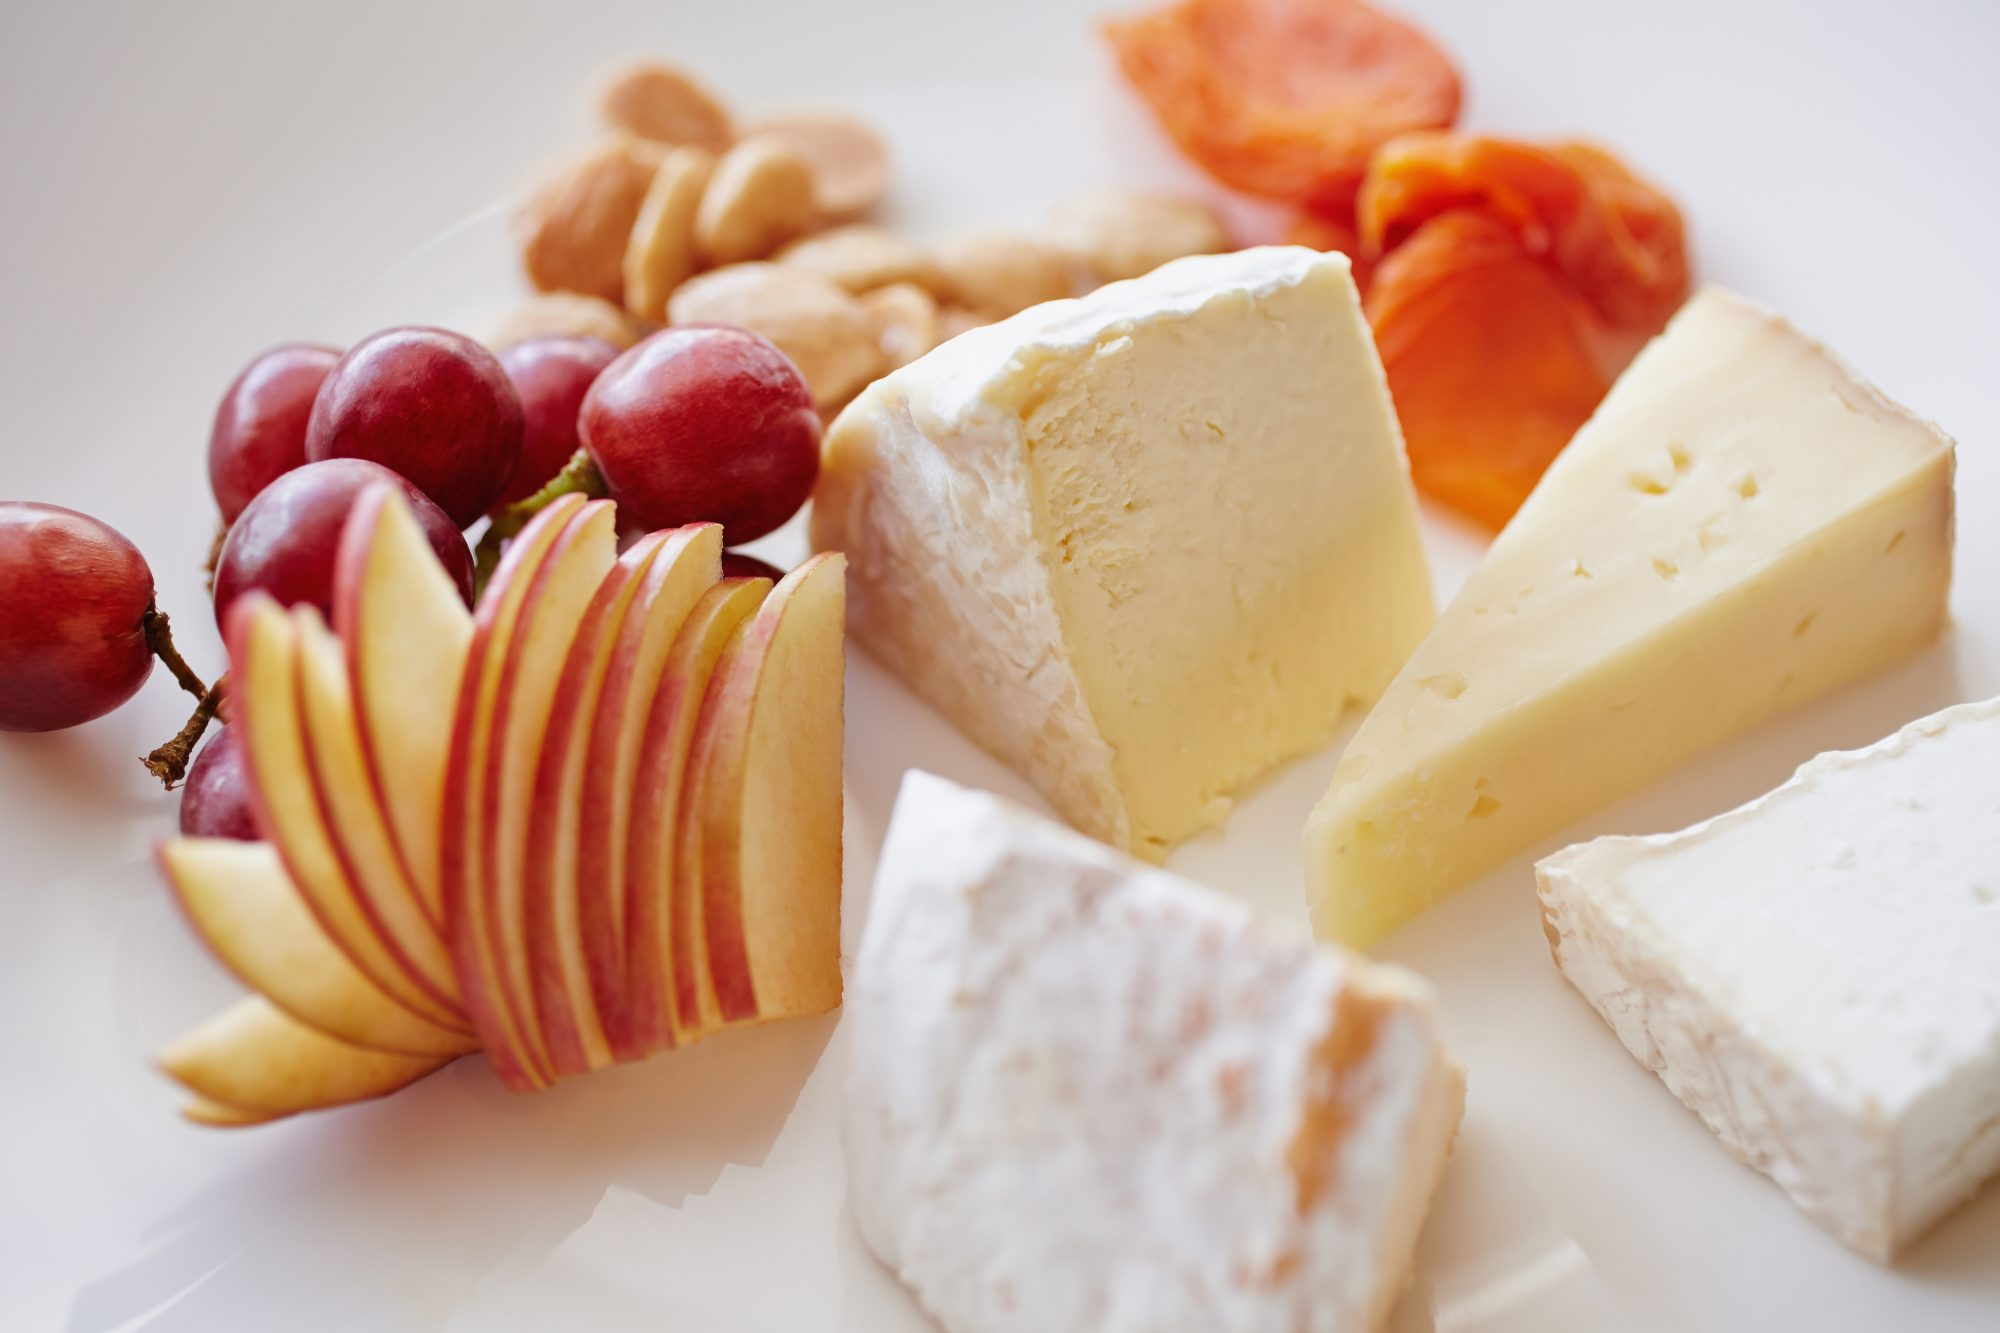 getty-cheese-image